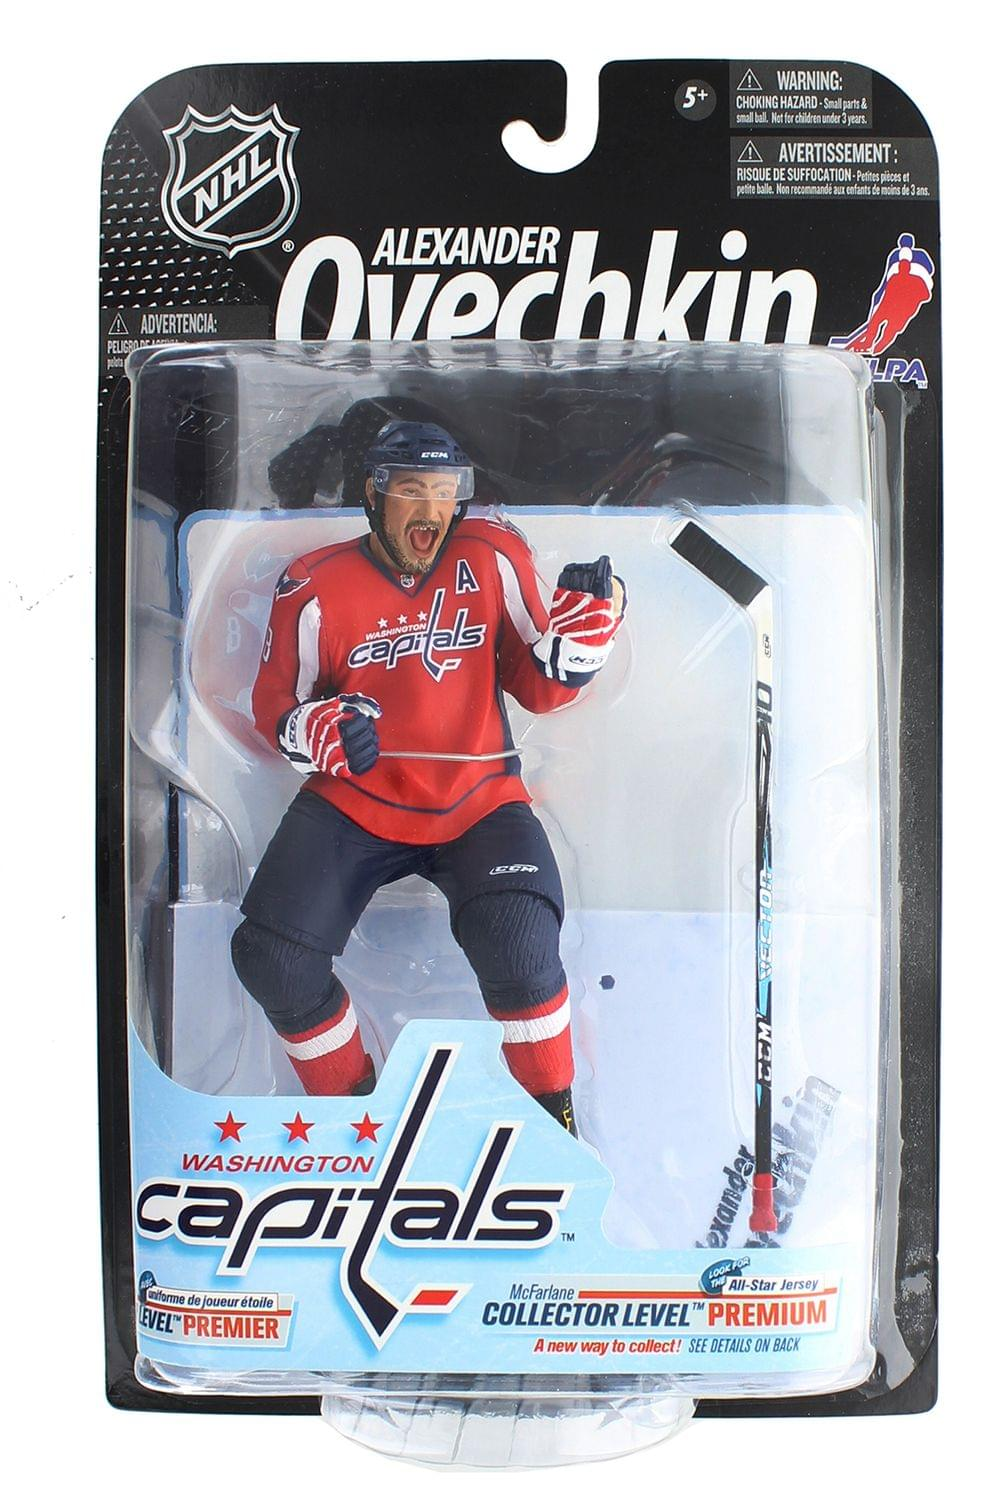 Washington Capitals NHL Series 23 McFarlane Figure - Alexander Ovechkin